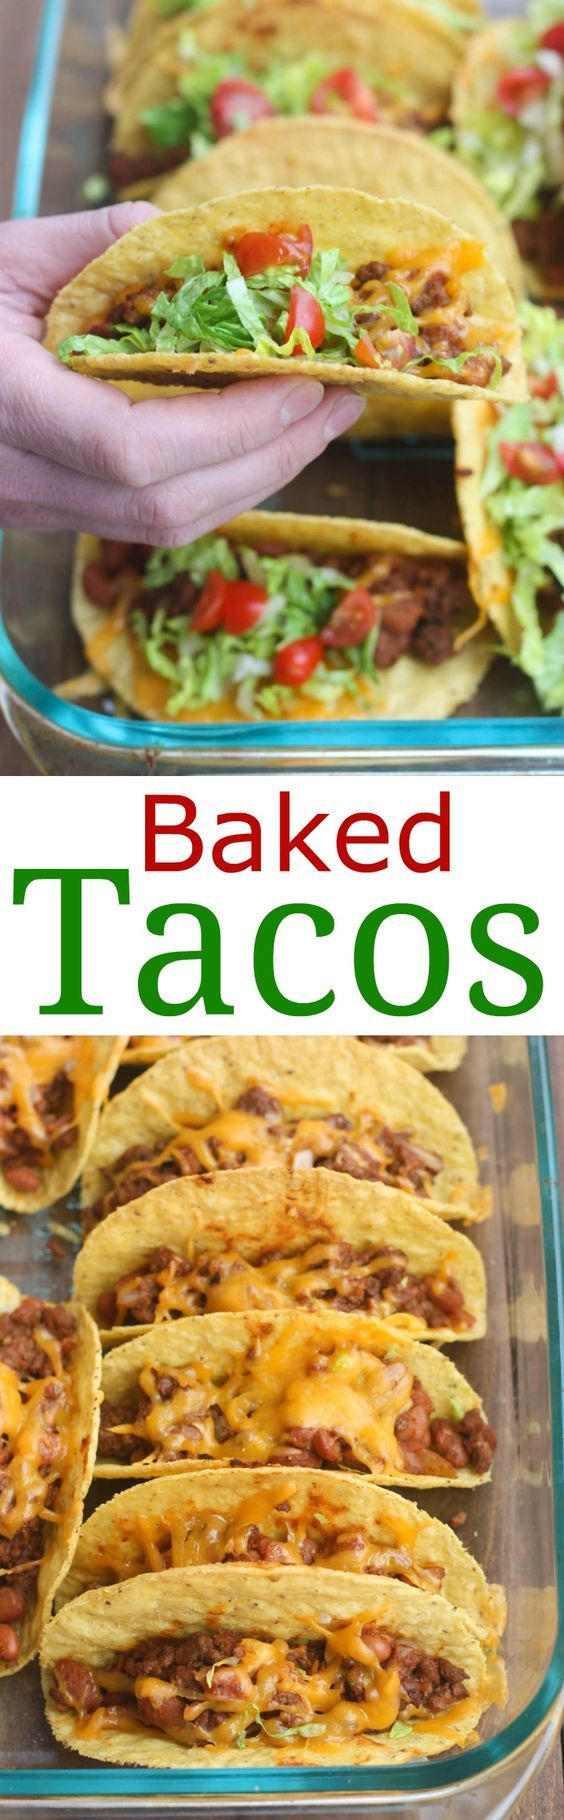 Oven Baked Tacos are soo easy and always a family favorite! Cheesy, crispy baked tacos with the best homemade taco filling (no packet seasoning!). | Tastes Better From Scratch: